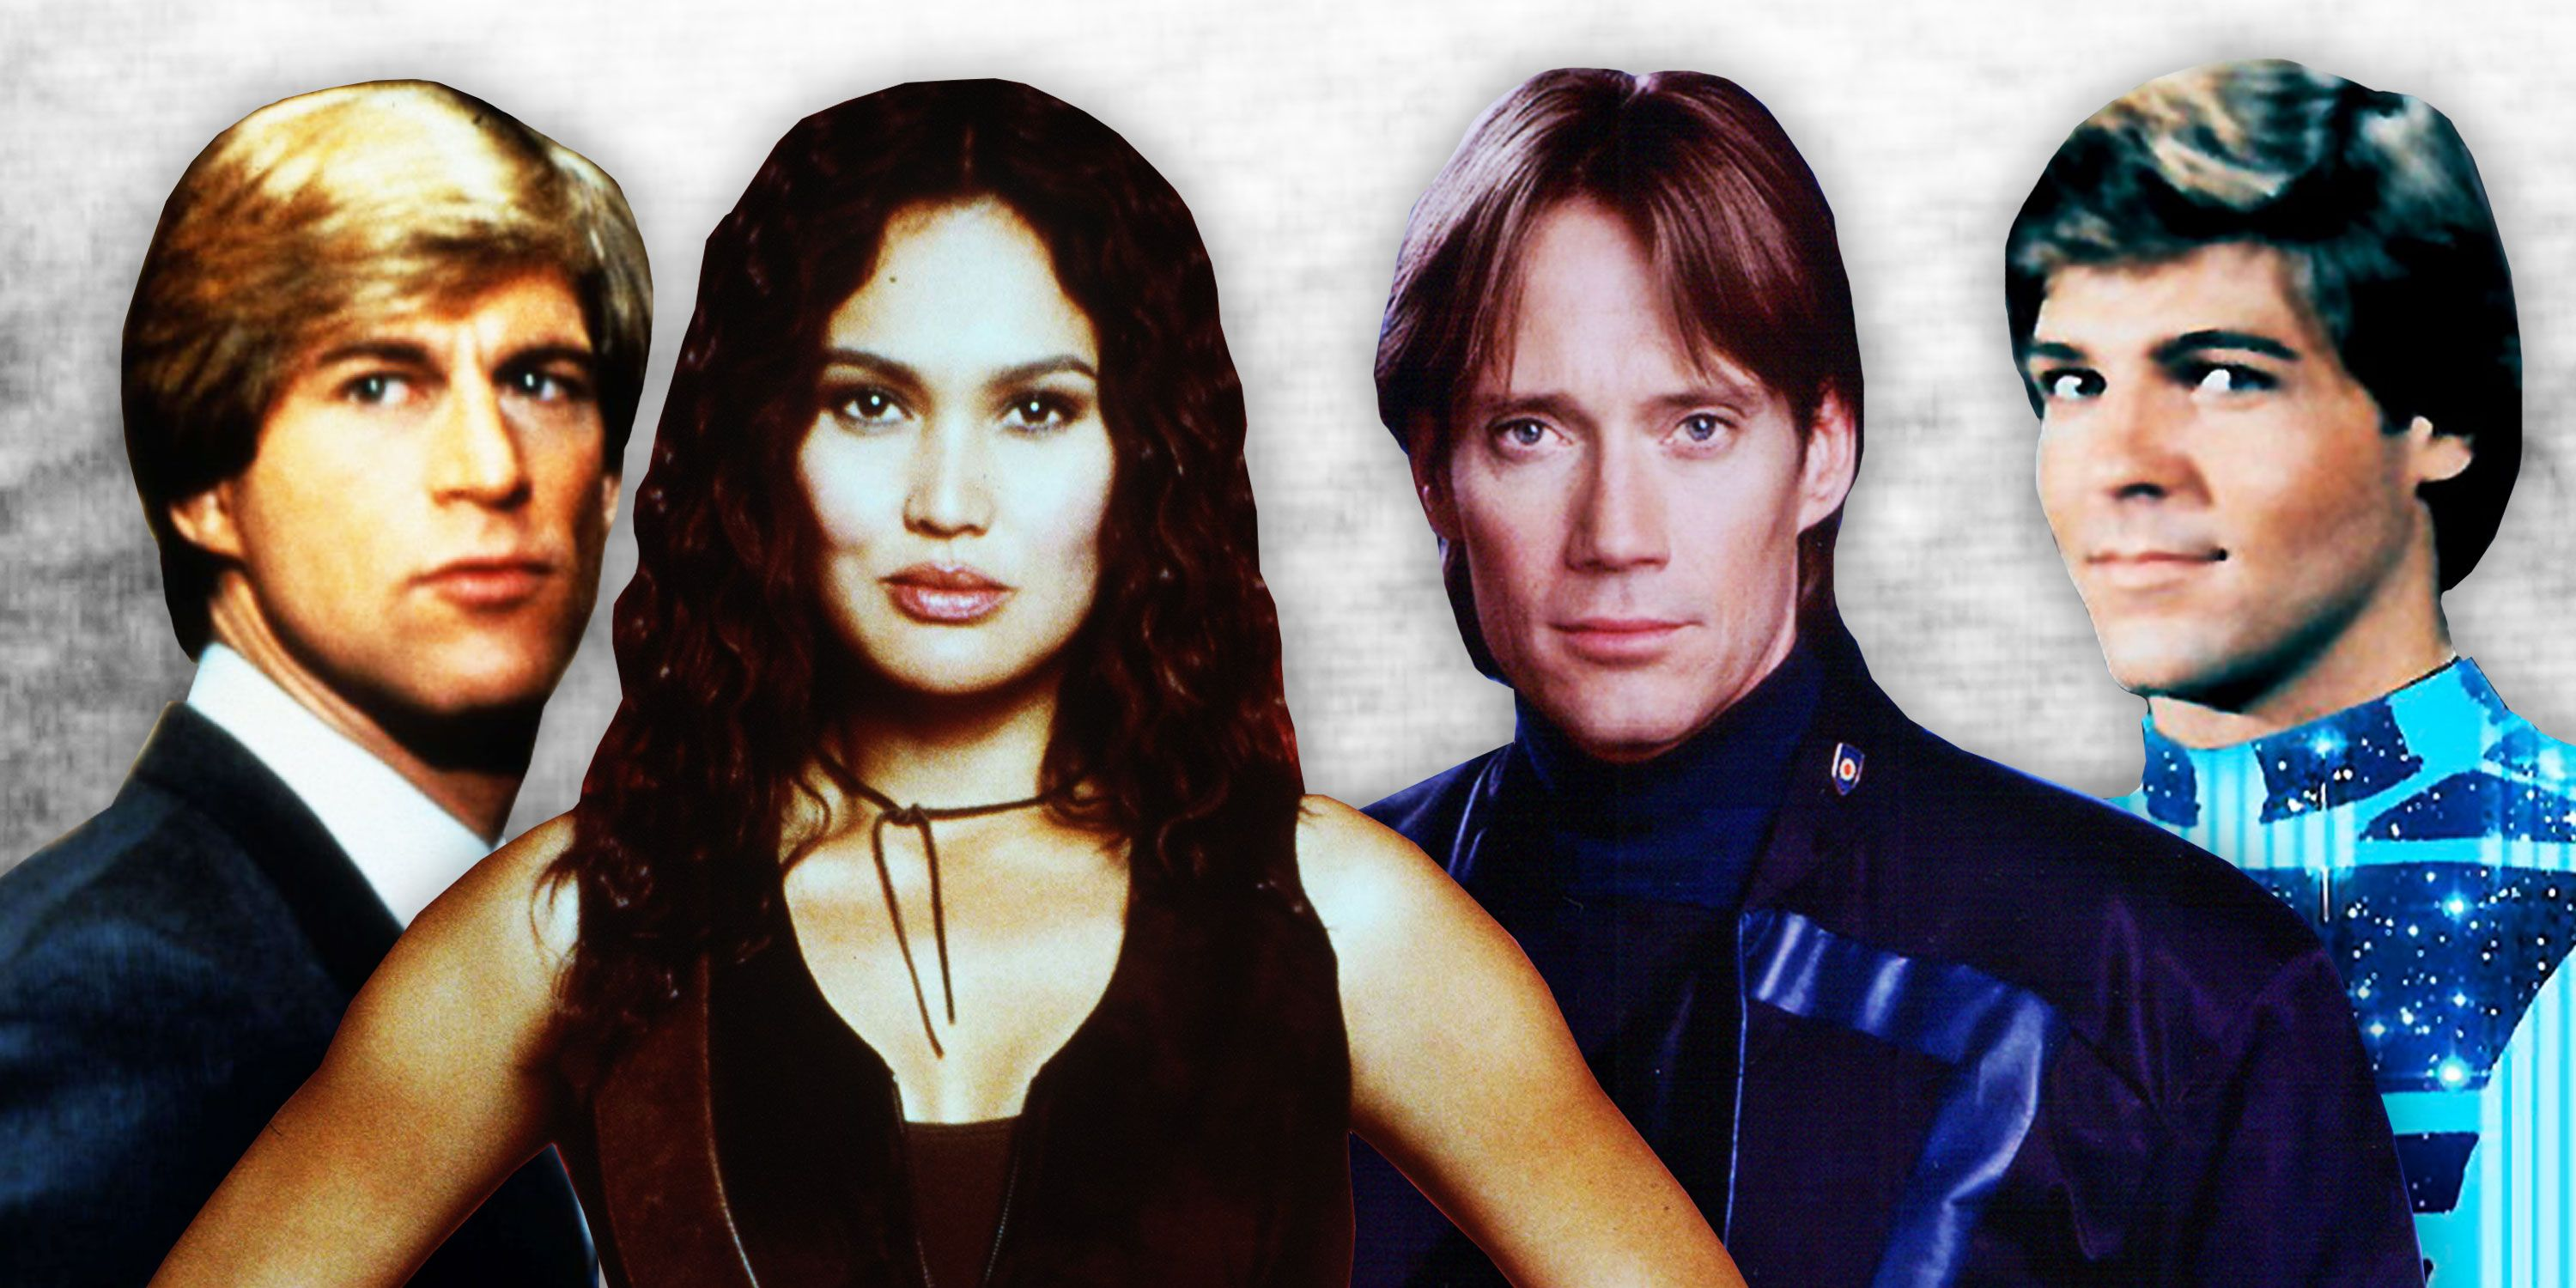 Simon MaCCorkindale in Manimal, Chuck Wagner as Automan, Kevin Sorbo in Andromeda, Tia Carrere in Relic Hunter